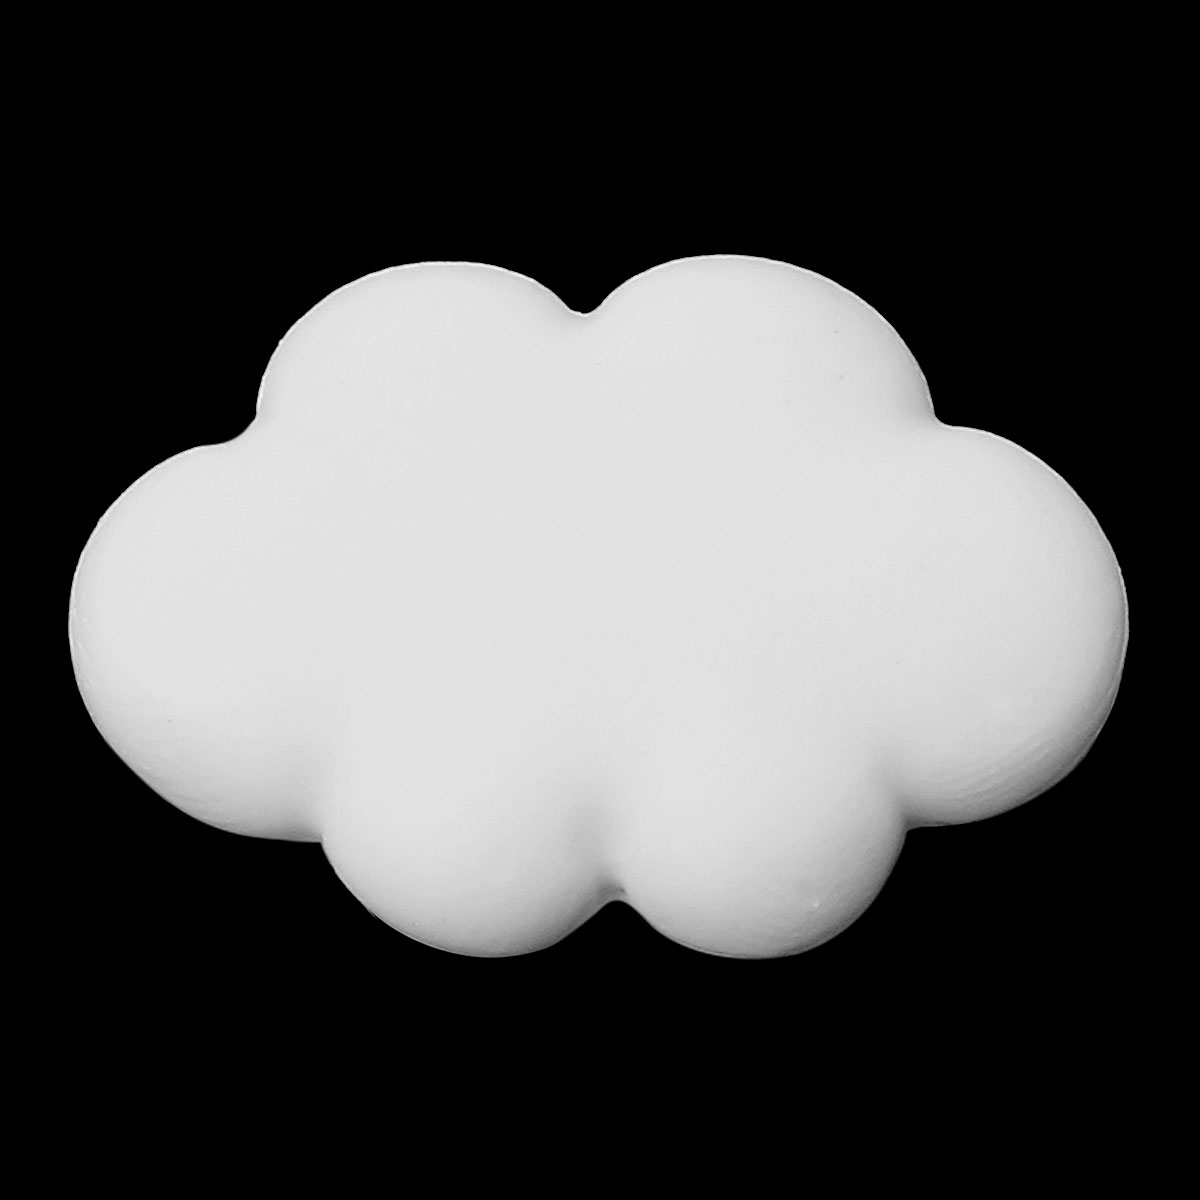 Polymer Clay Cabochon Scrapbooking Embellishments Findings Cloud White 25mm(1)x 18mm(6/8),30 PCs new